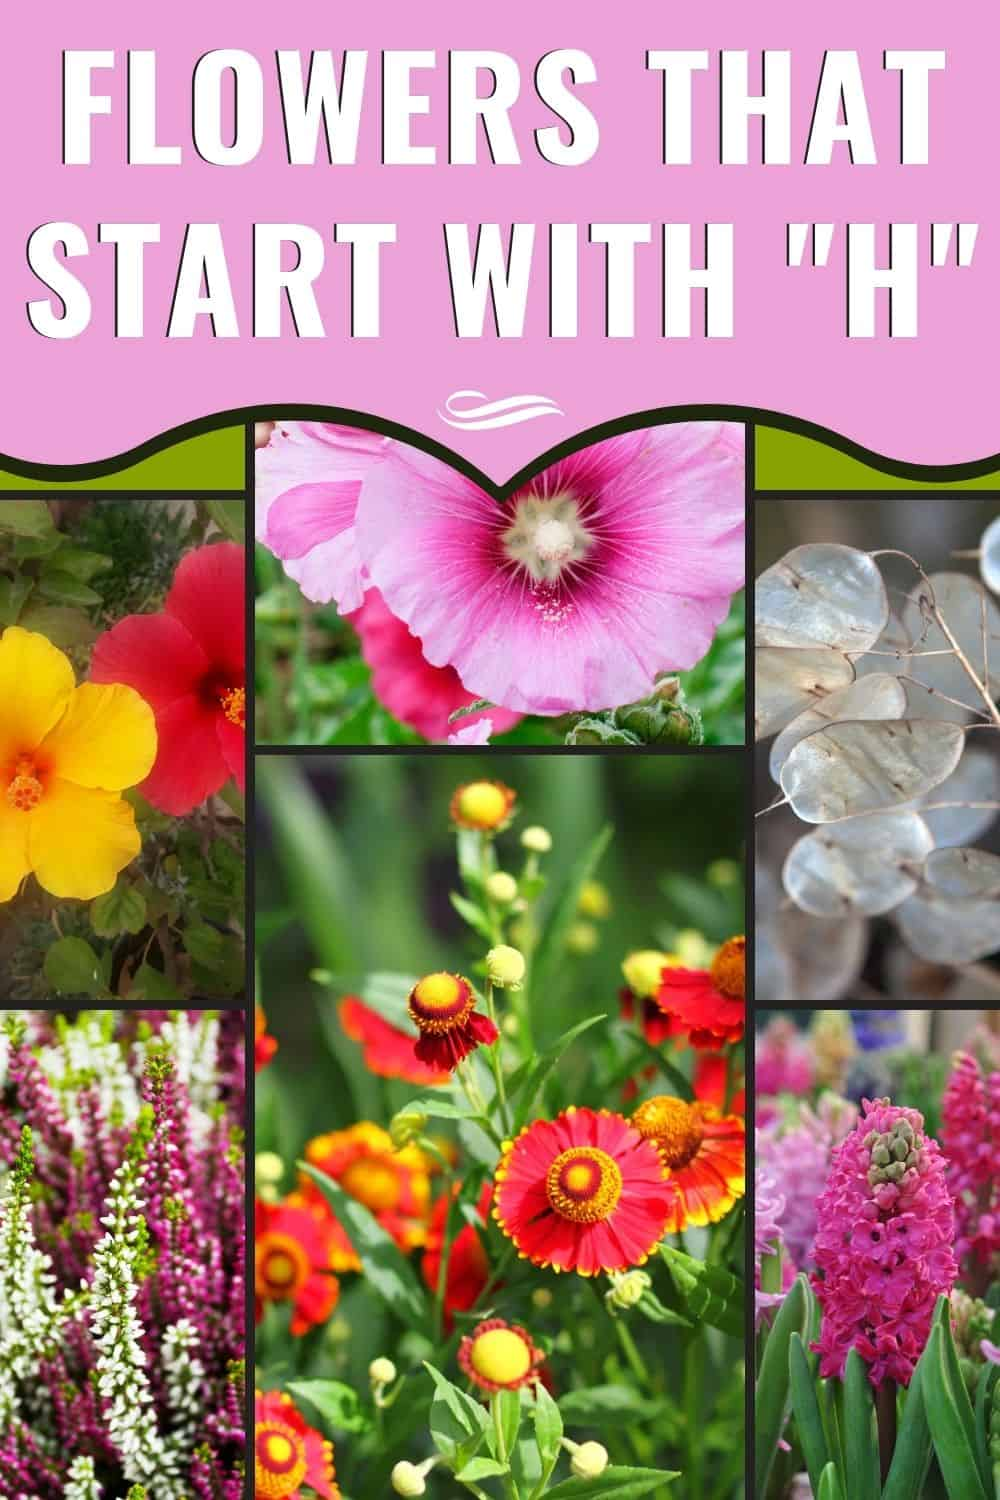 Flowers that start with H